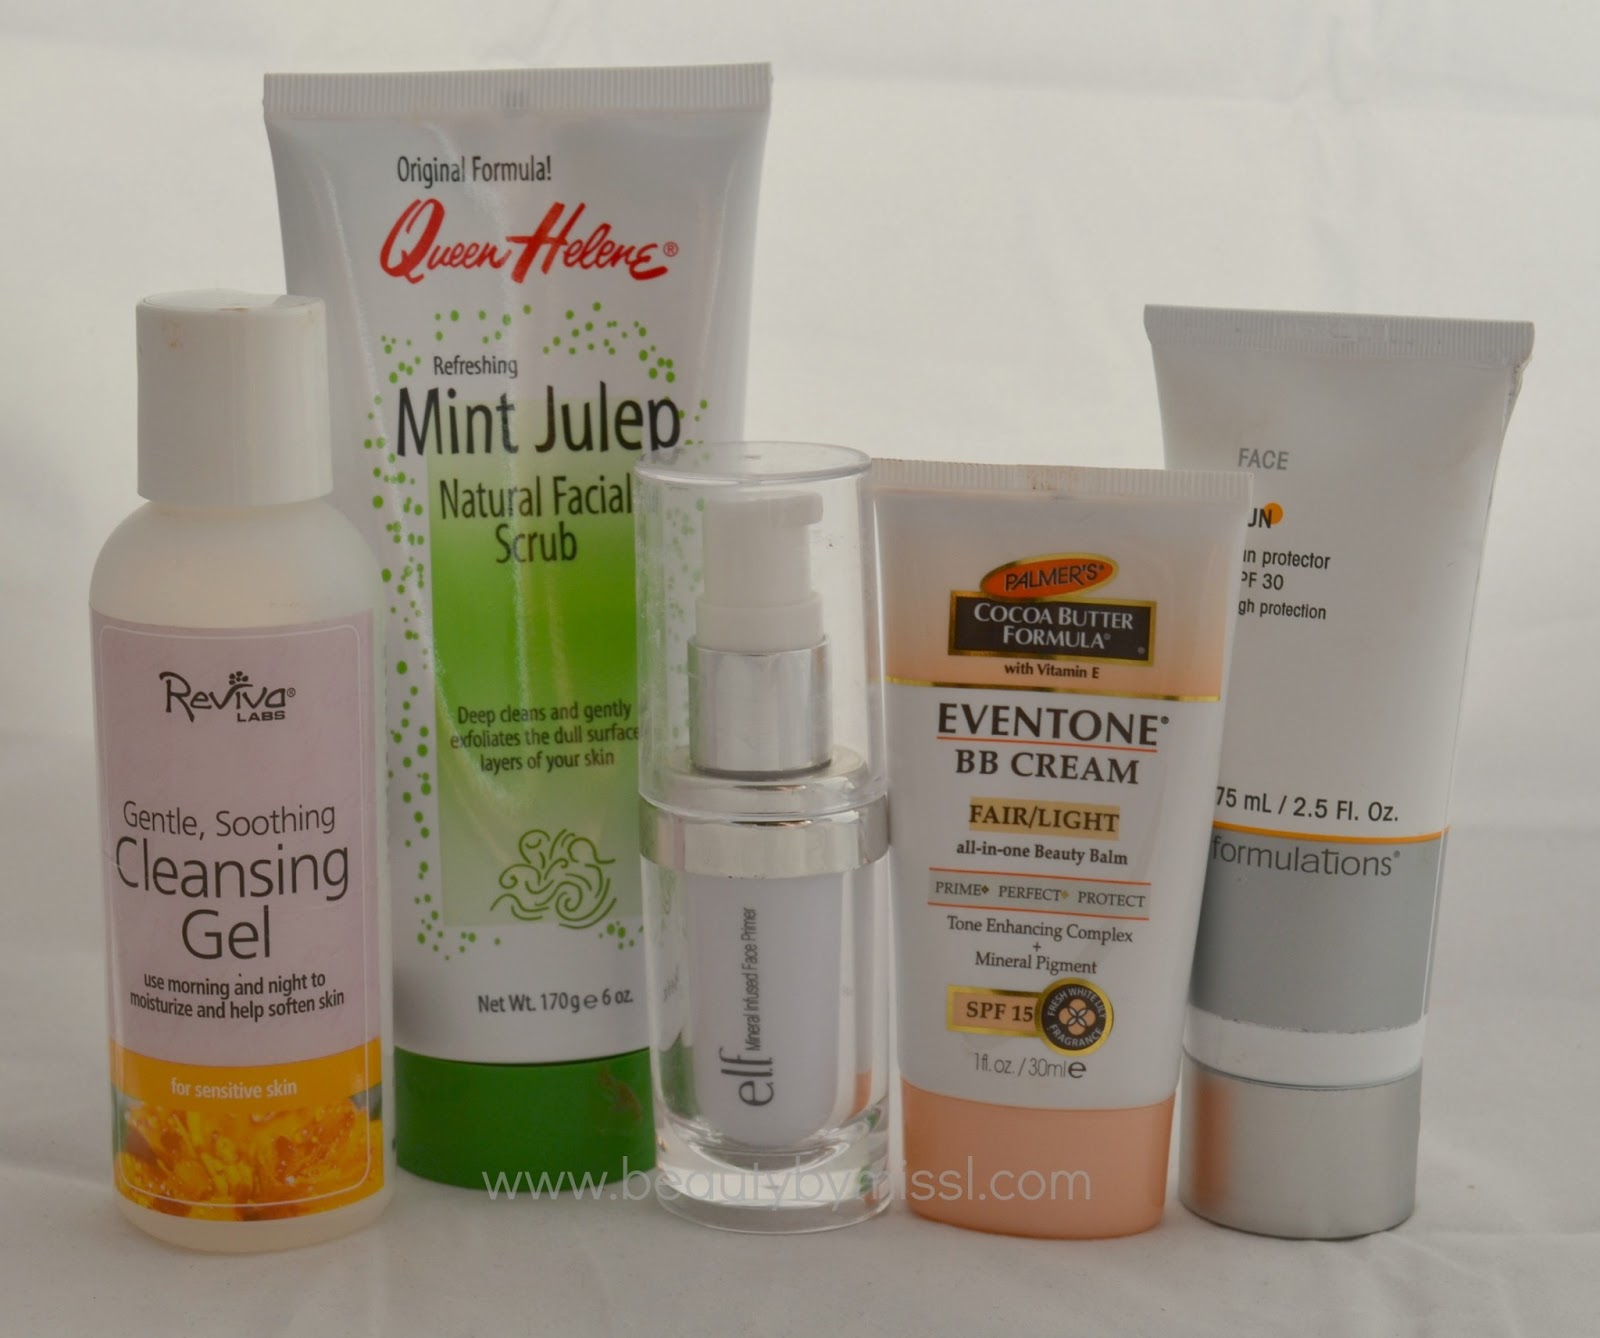 reviva labs, mint julep facial scrub,elf primer, palmers bb cream, md formulations sunscreen